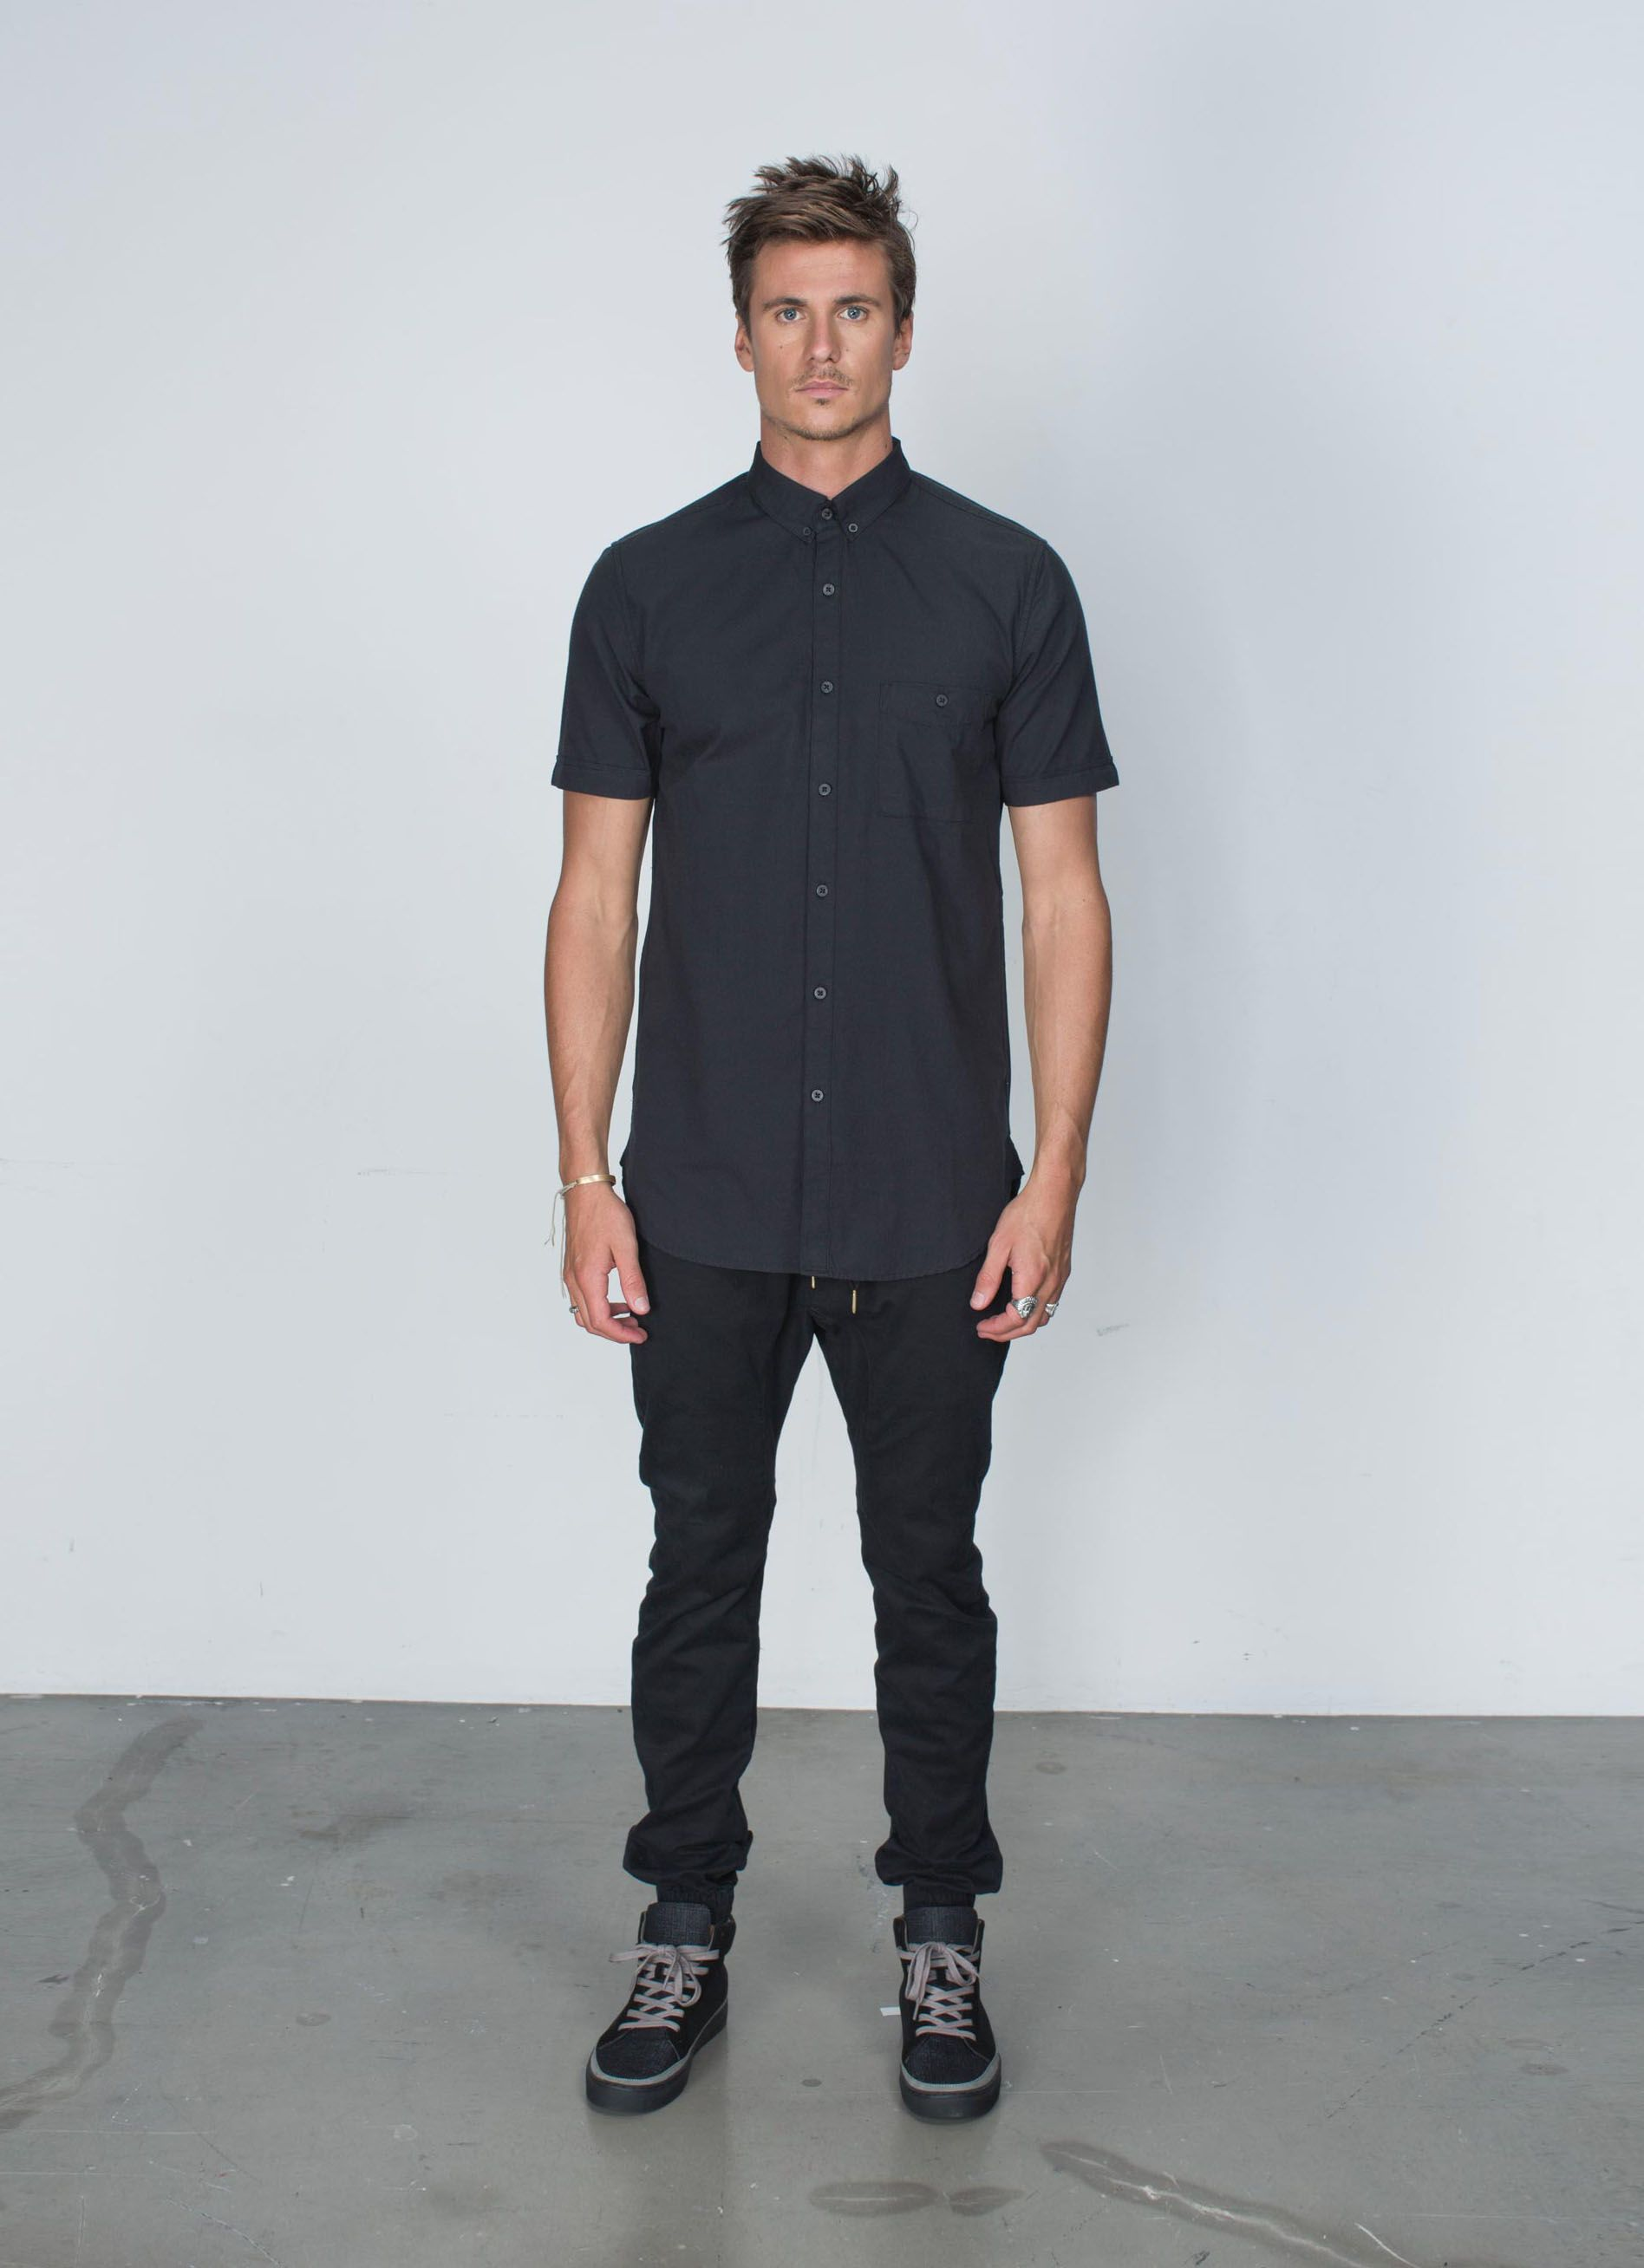 Seven Foot SS Shirt Black | Guy fashion and Man style